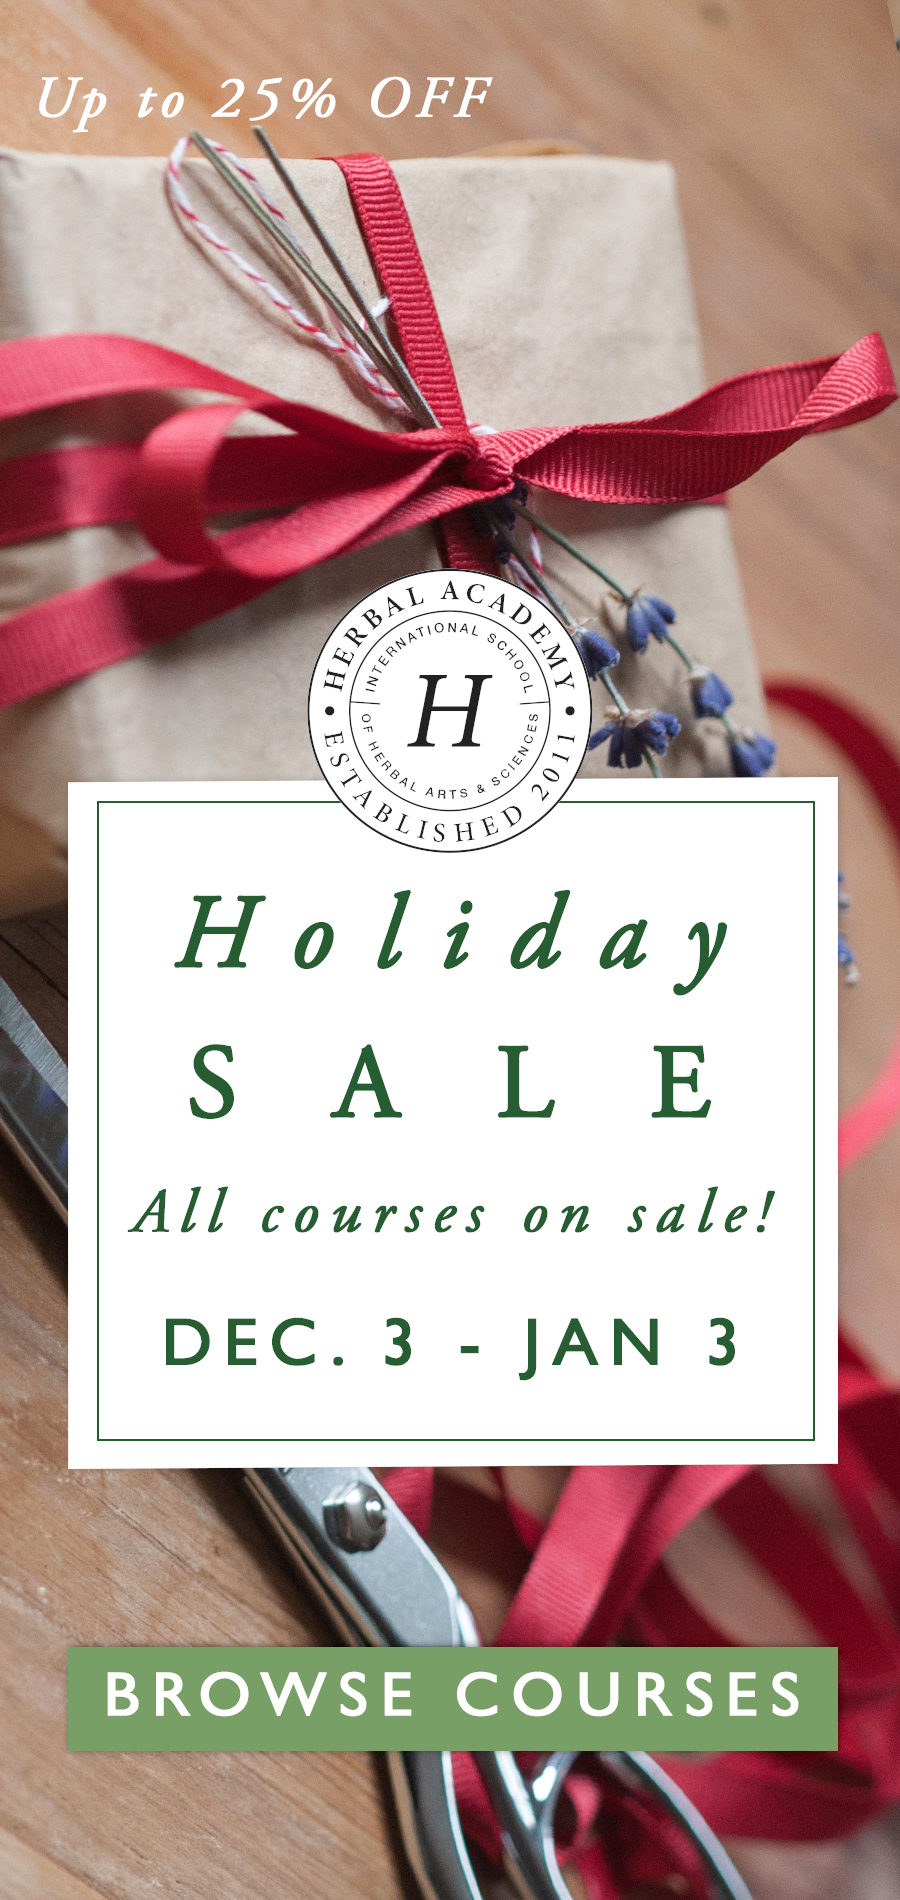 All courses on sale now - up to 25% off!